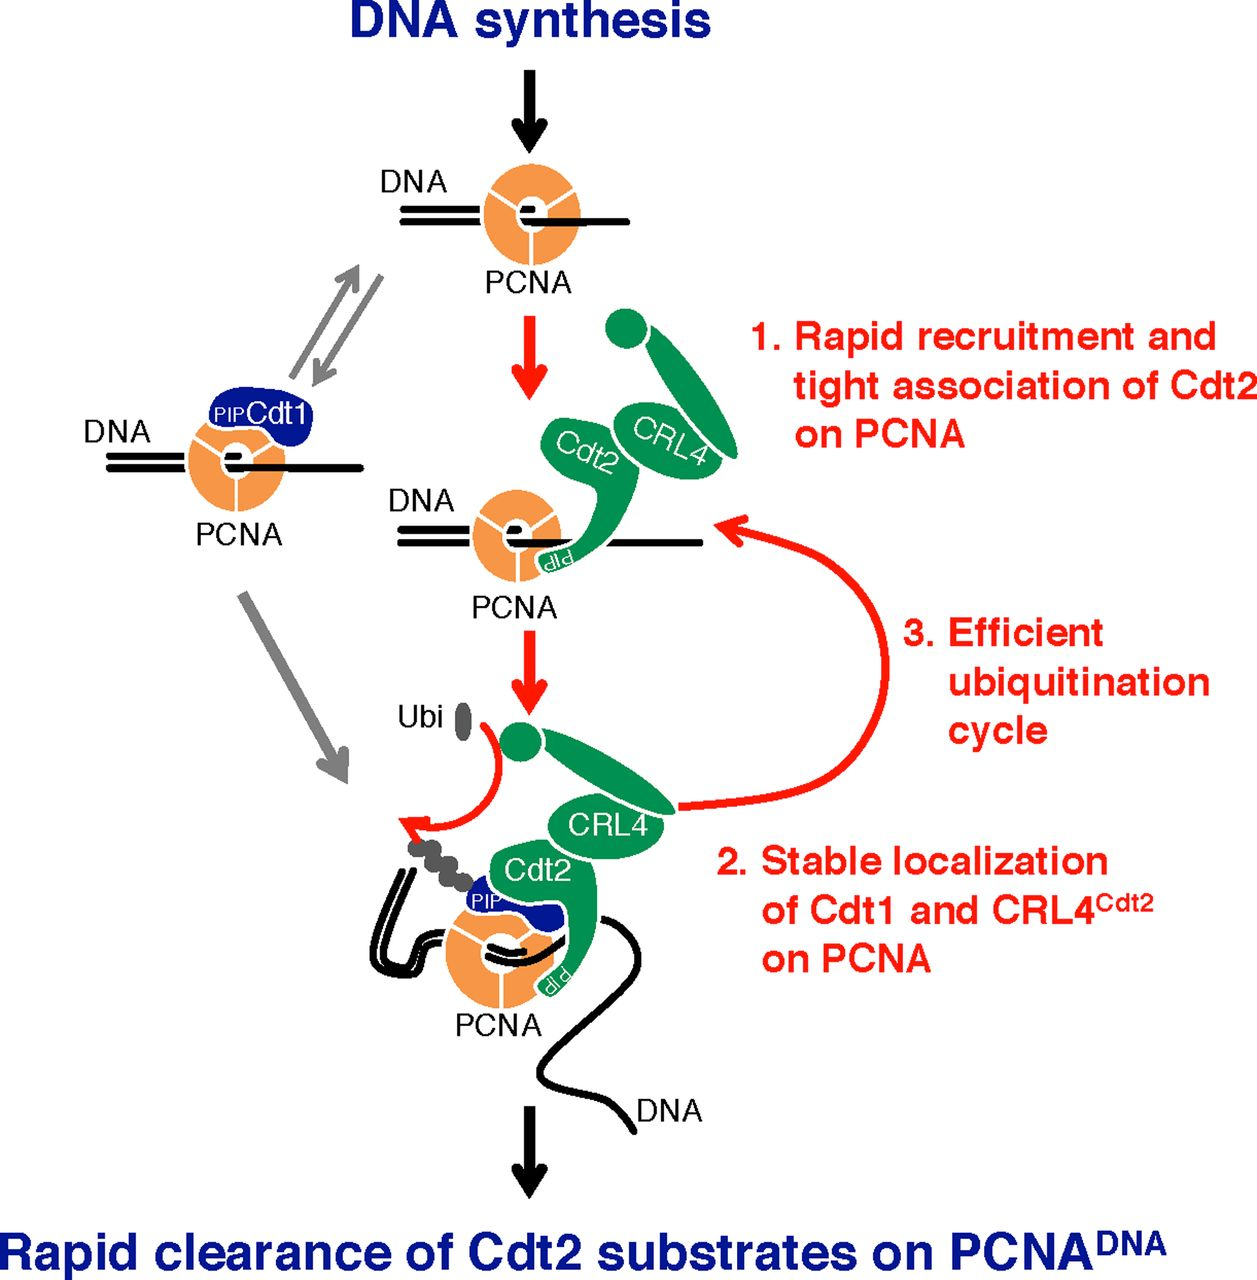 Direct binding of Cdt2 to PCNA is important for targeting